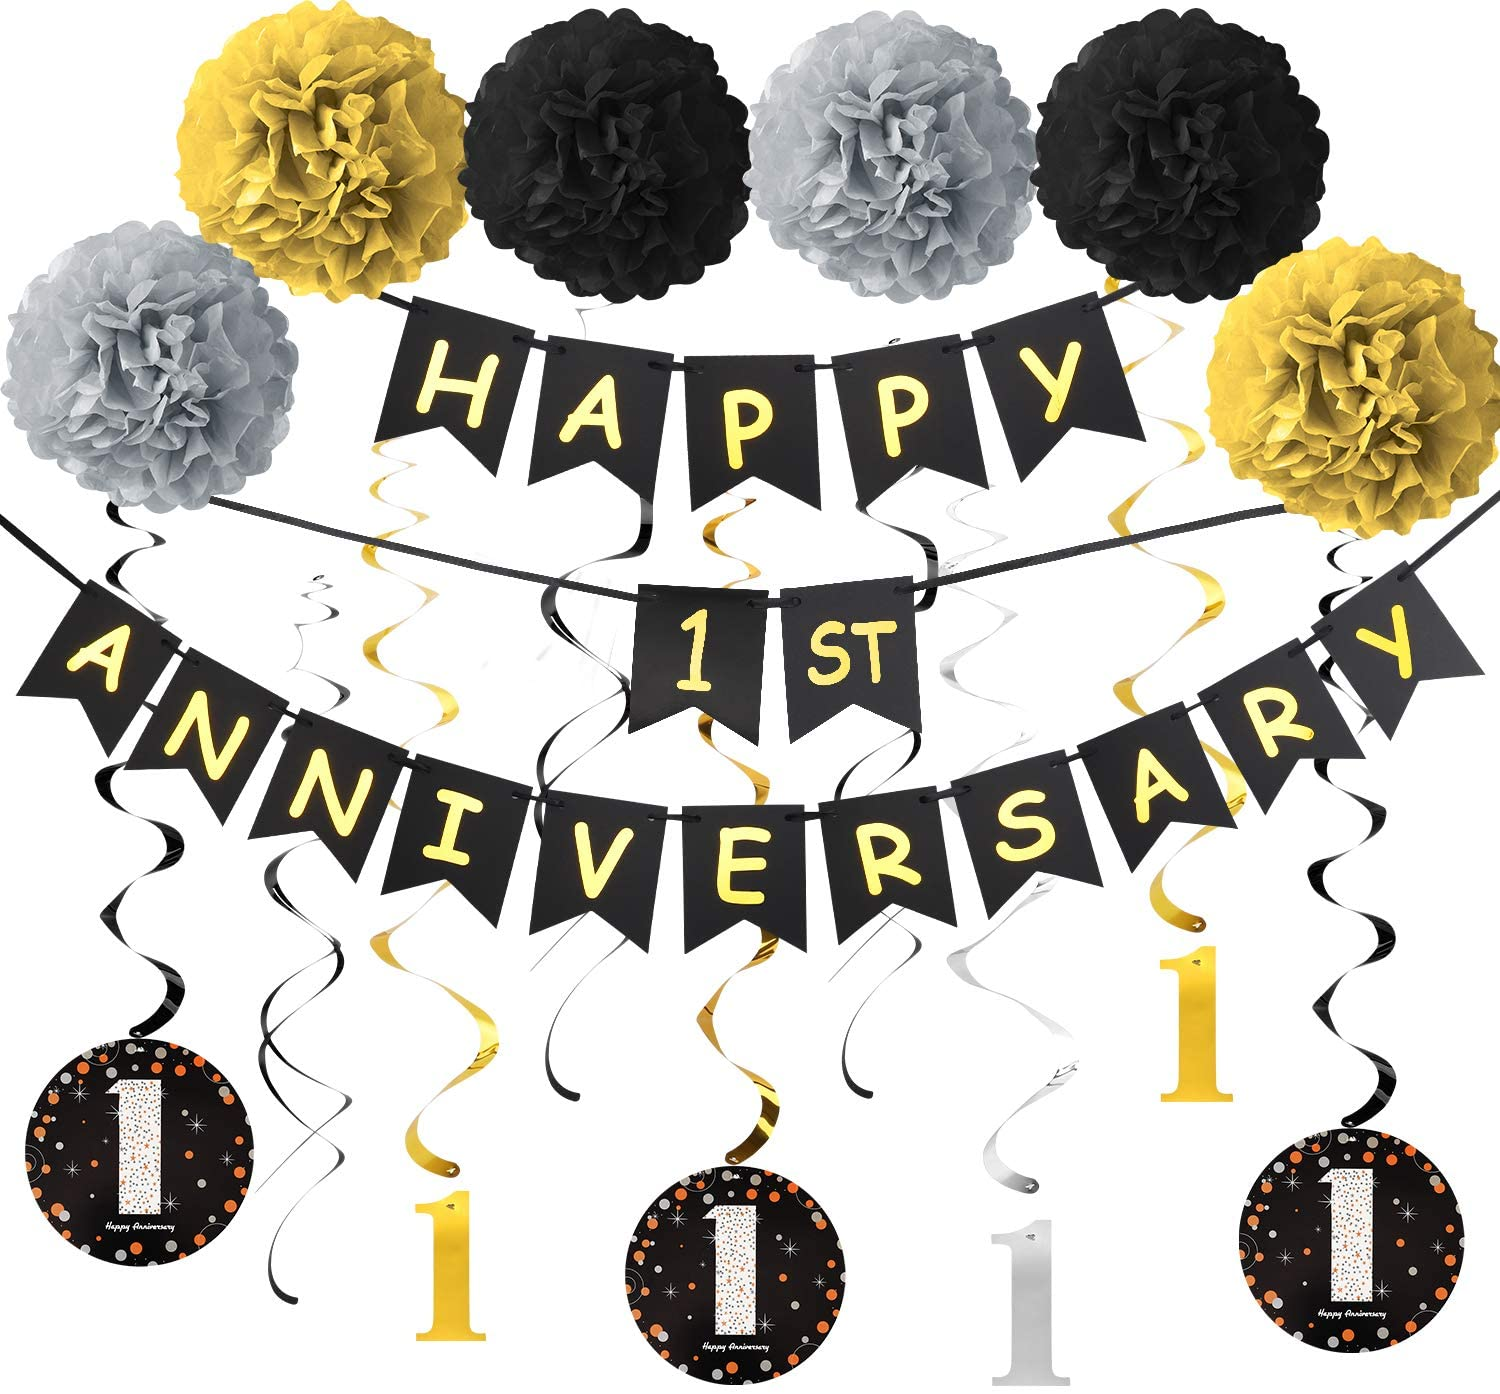 Yoaokiy 1 Year Anniversary Decorations Kit, 1st Wedding Anniversary Banner Party Decorations Suppilies - Including Gold Glitter Happy 1th Anniversary Banner / 9Pcs Sparkling 1 Hanging Swirl /6Pcs Poms